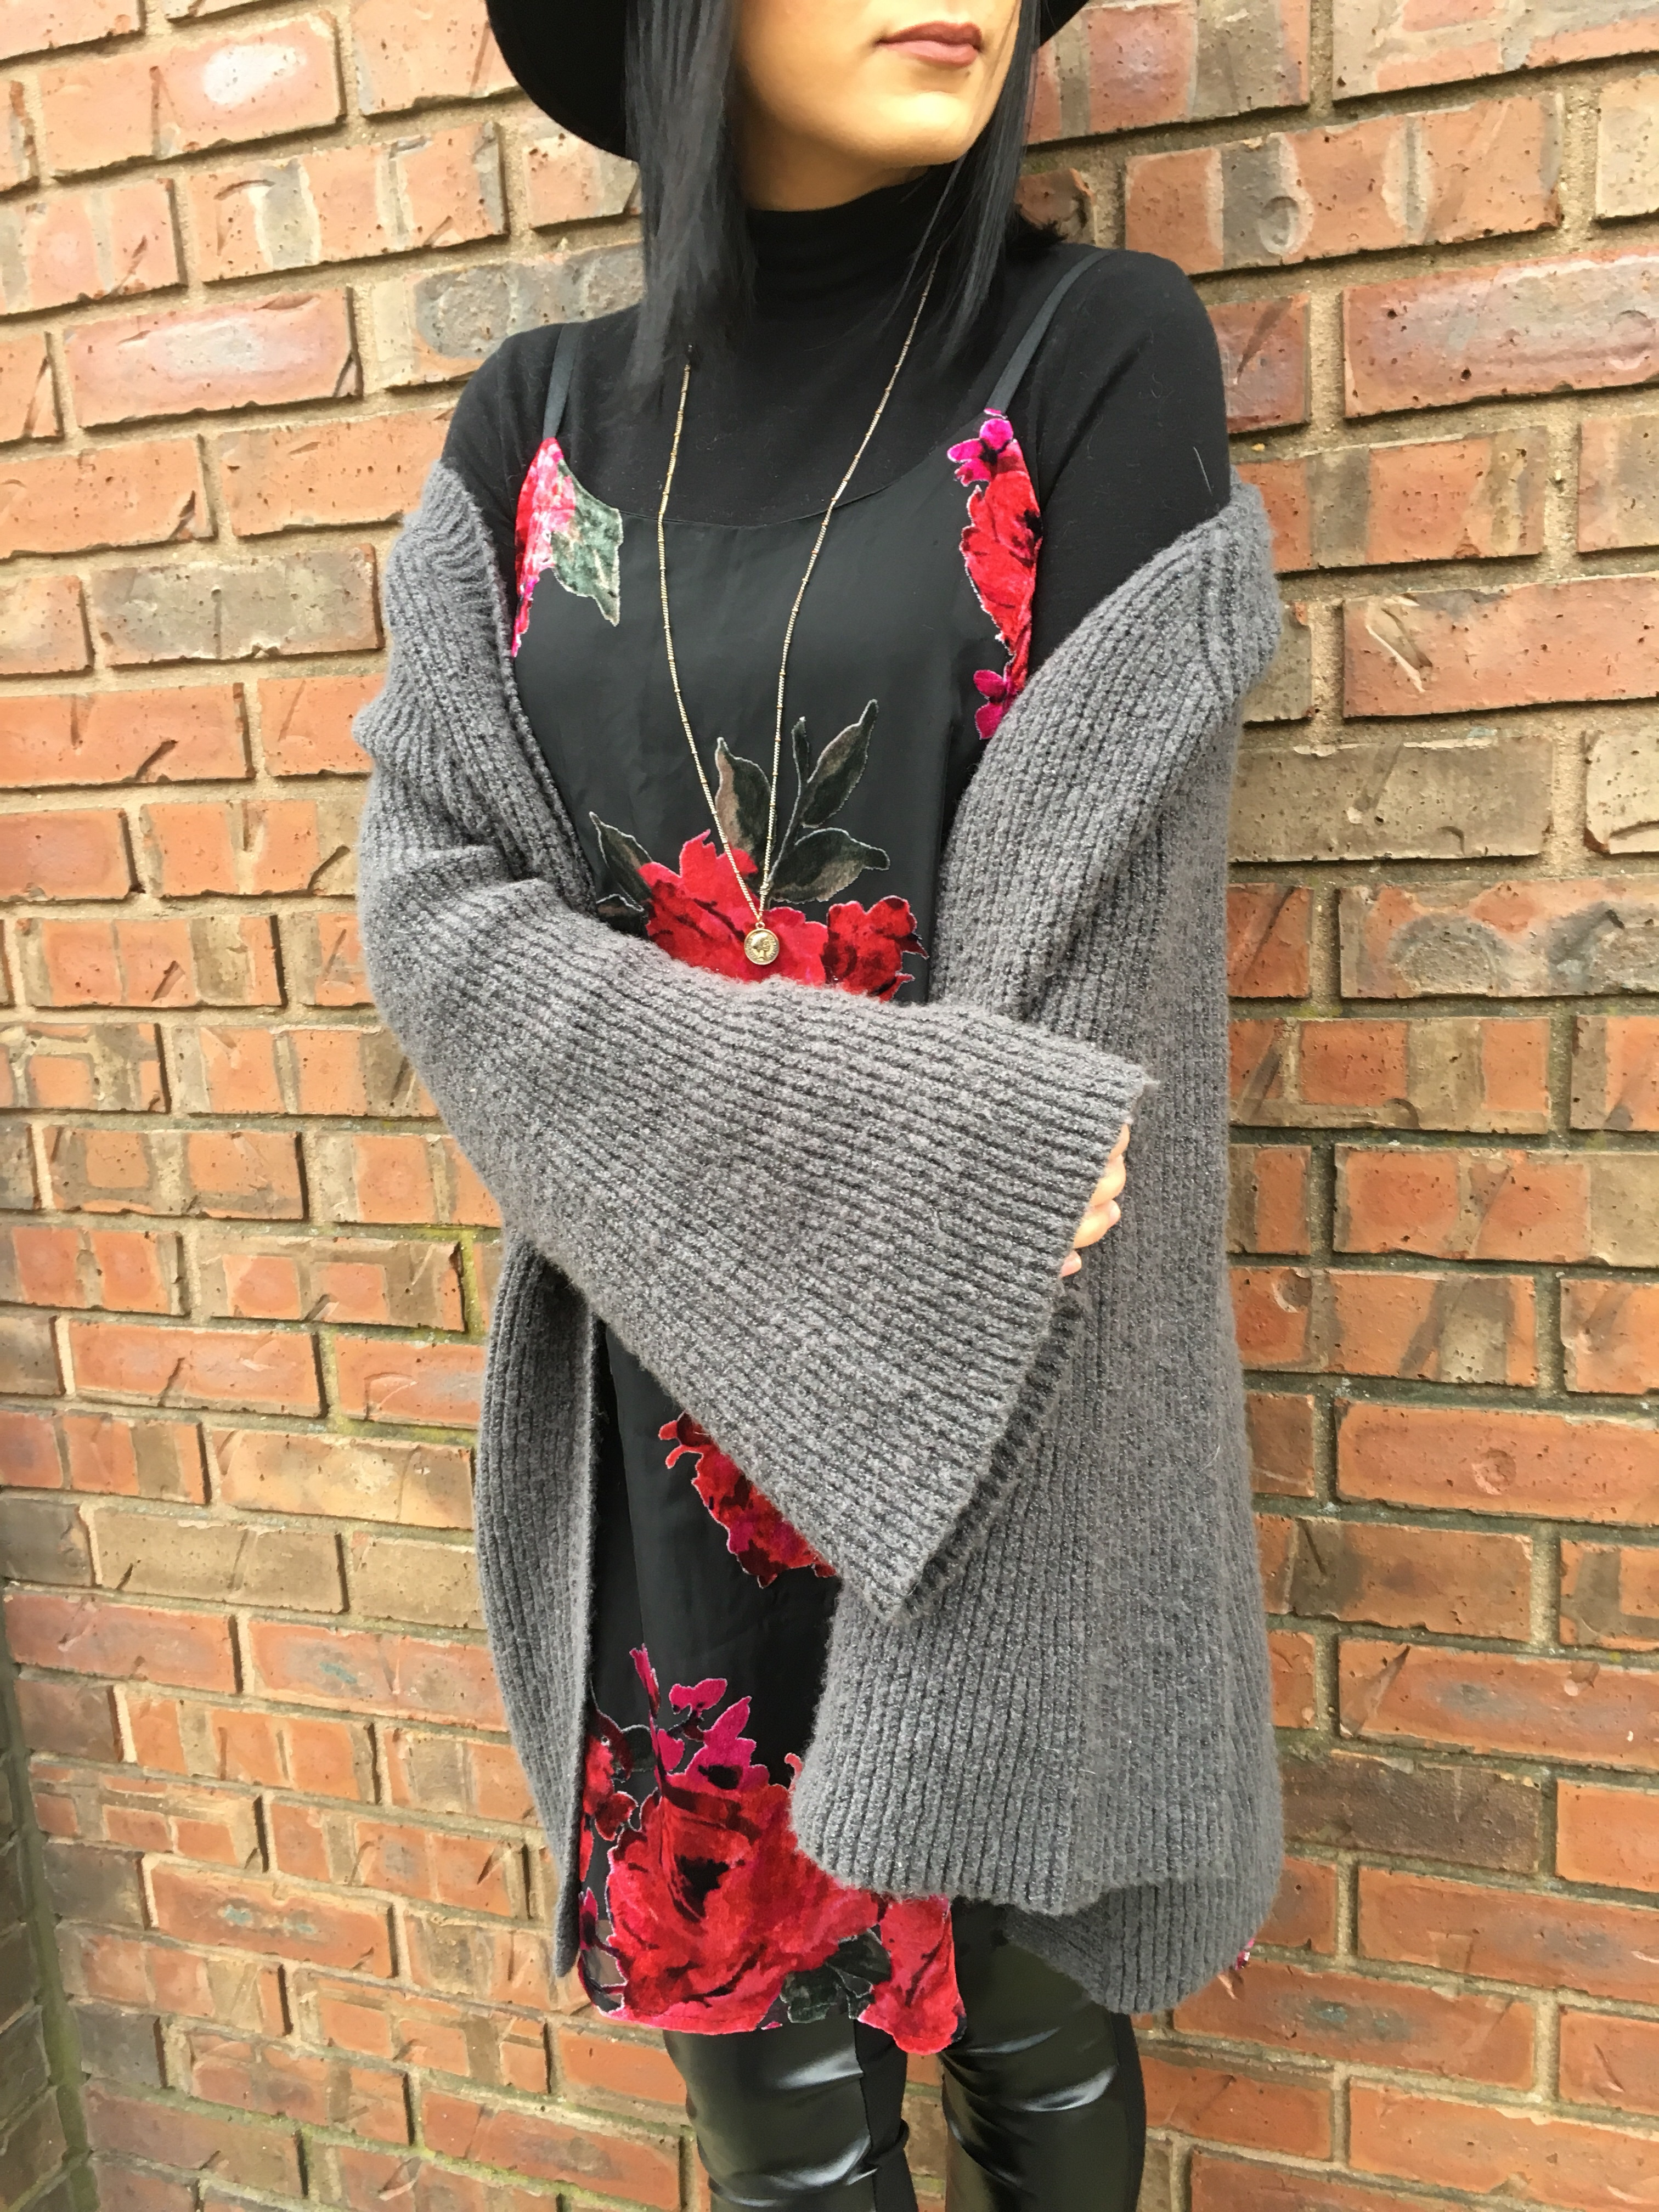 a1795ea90129 I originally planned to wear this with fishnet stockings, but it was  freezing this day and your girl does not sacrifice warmth for style… power  to you if ...